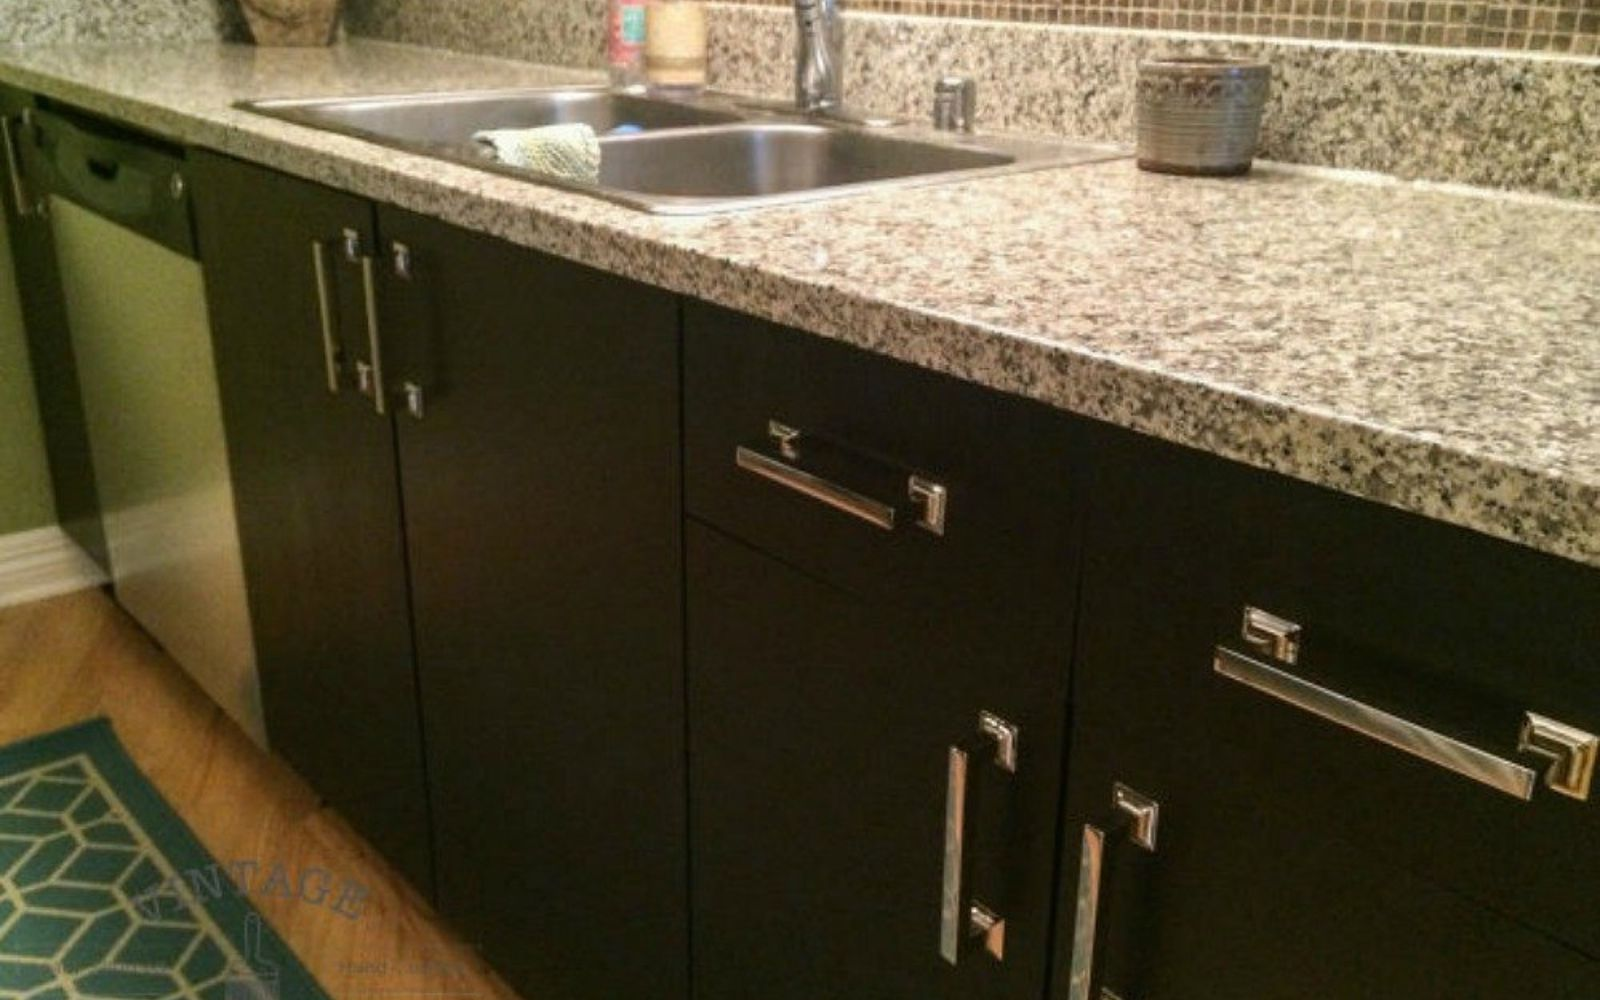 S Kitchen Cabinets 12 reasons not to paint your kitchen cabinets white | hometalk